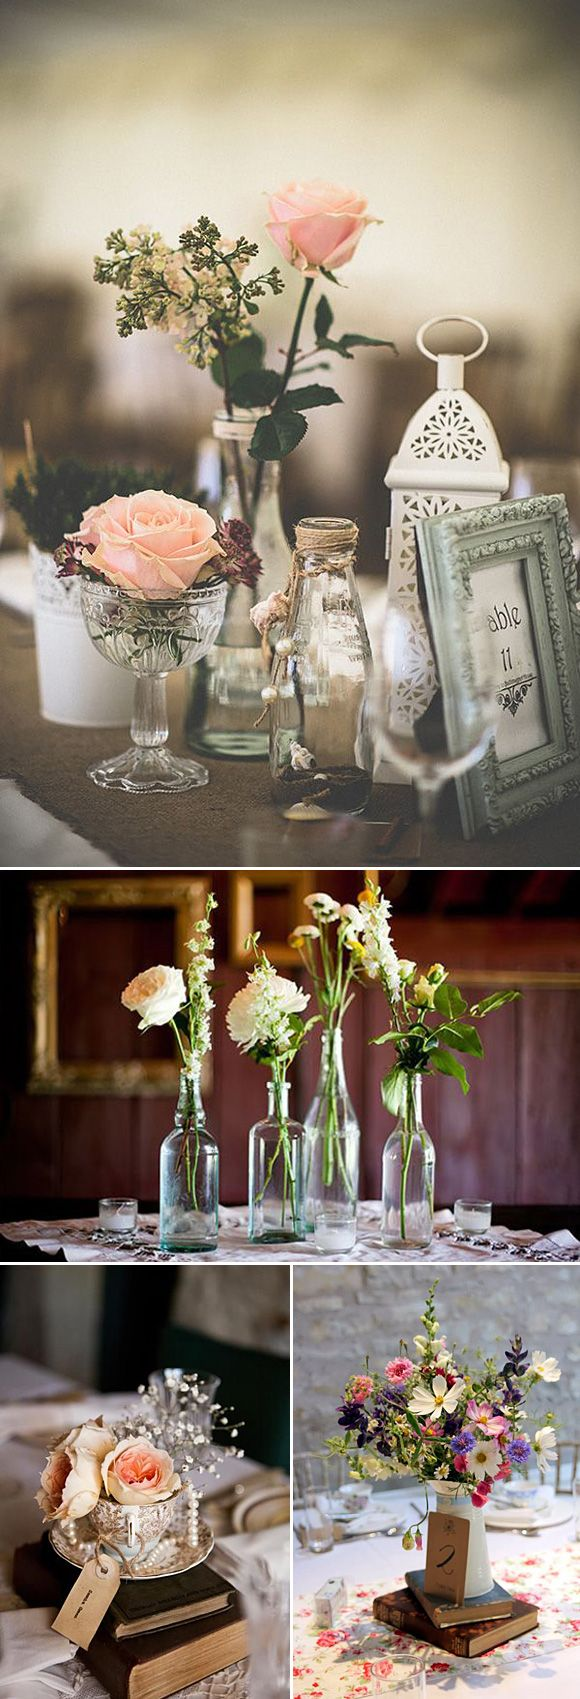 25 best ideas about arreglos para xv on pinterest - Decoraciones de bodas ...